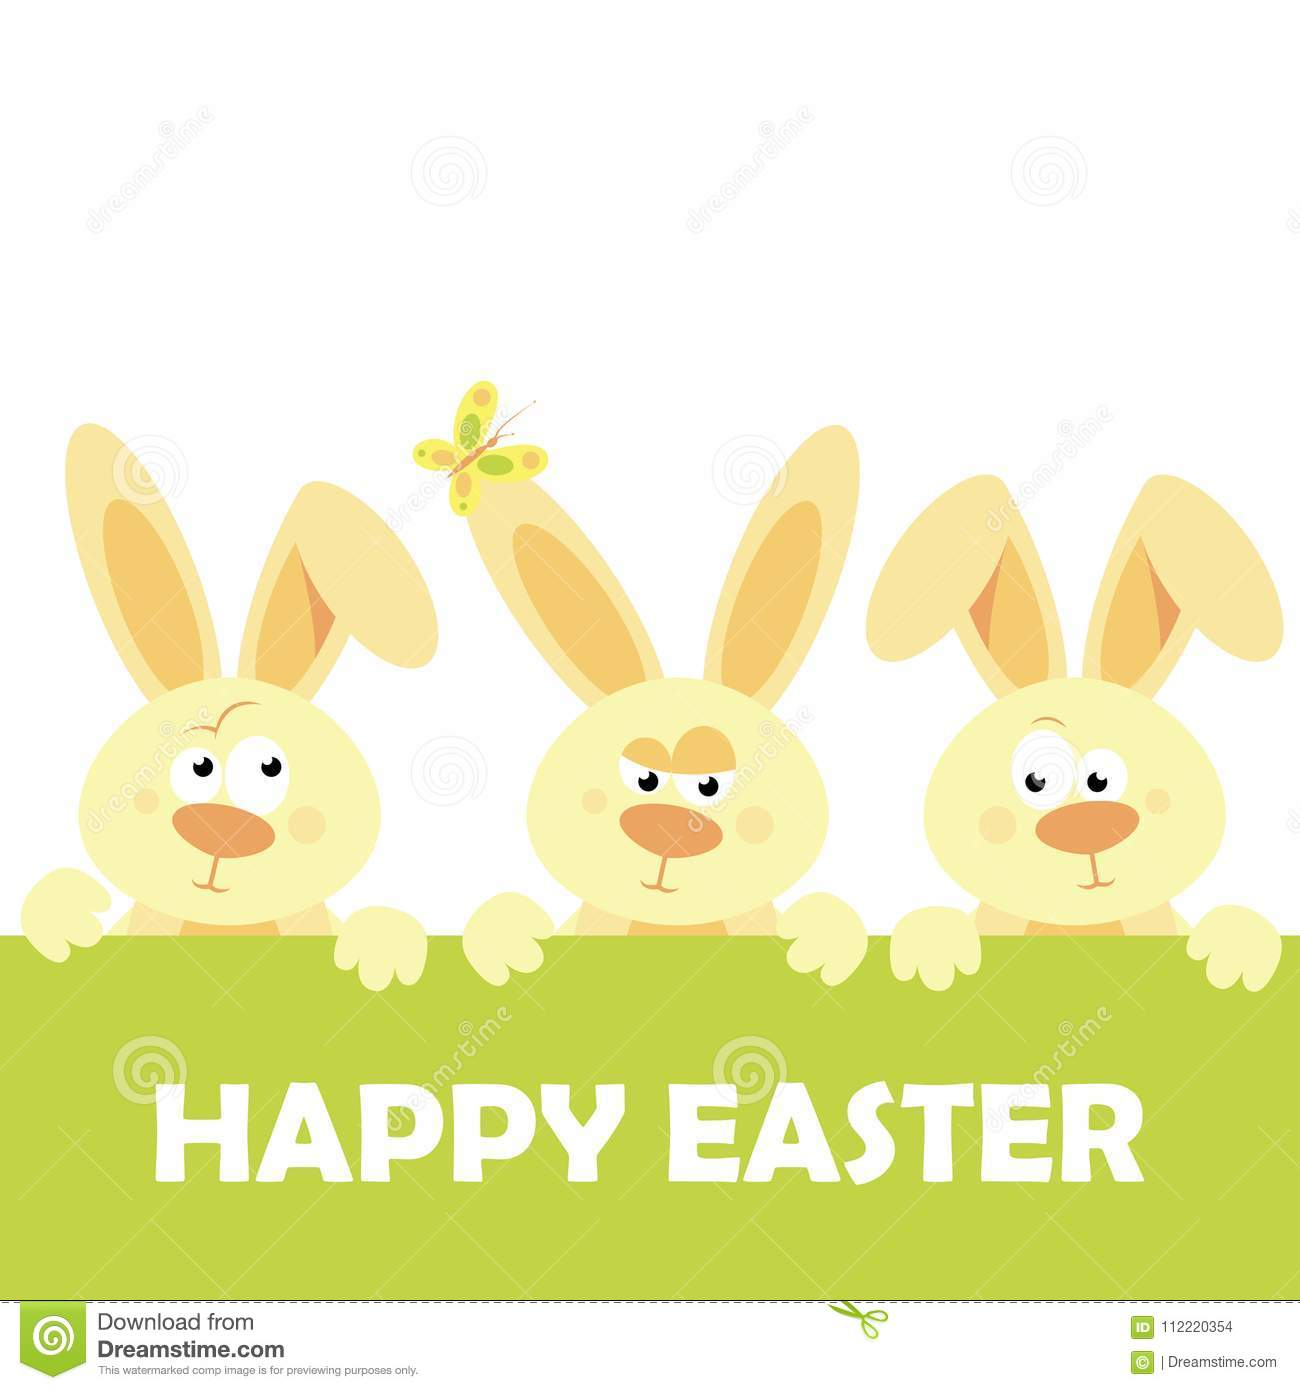 Download Happy Easter Vector Design With Cute Rabbit Characters -  Advertising Poster Or Flyer Template With